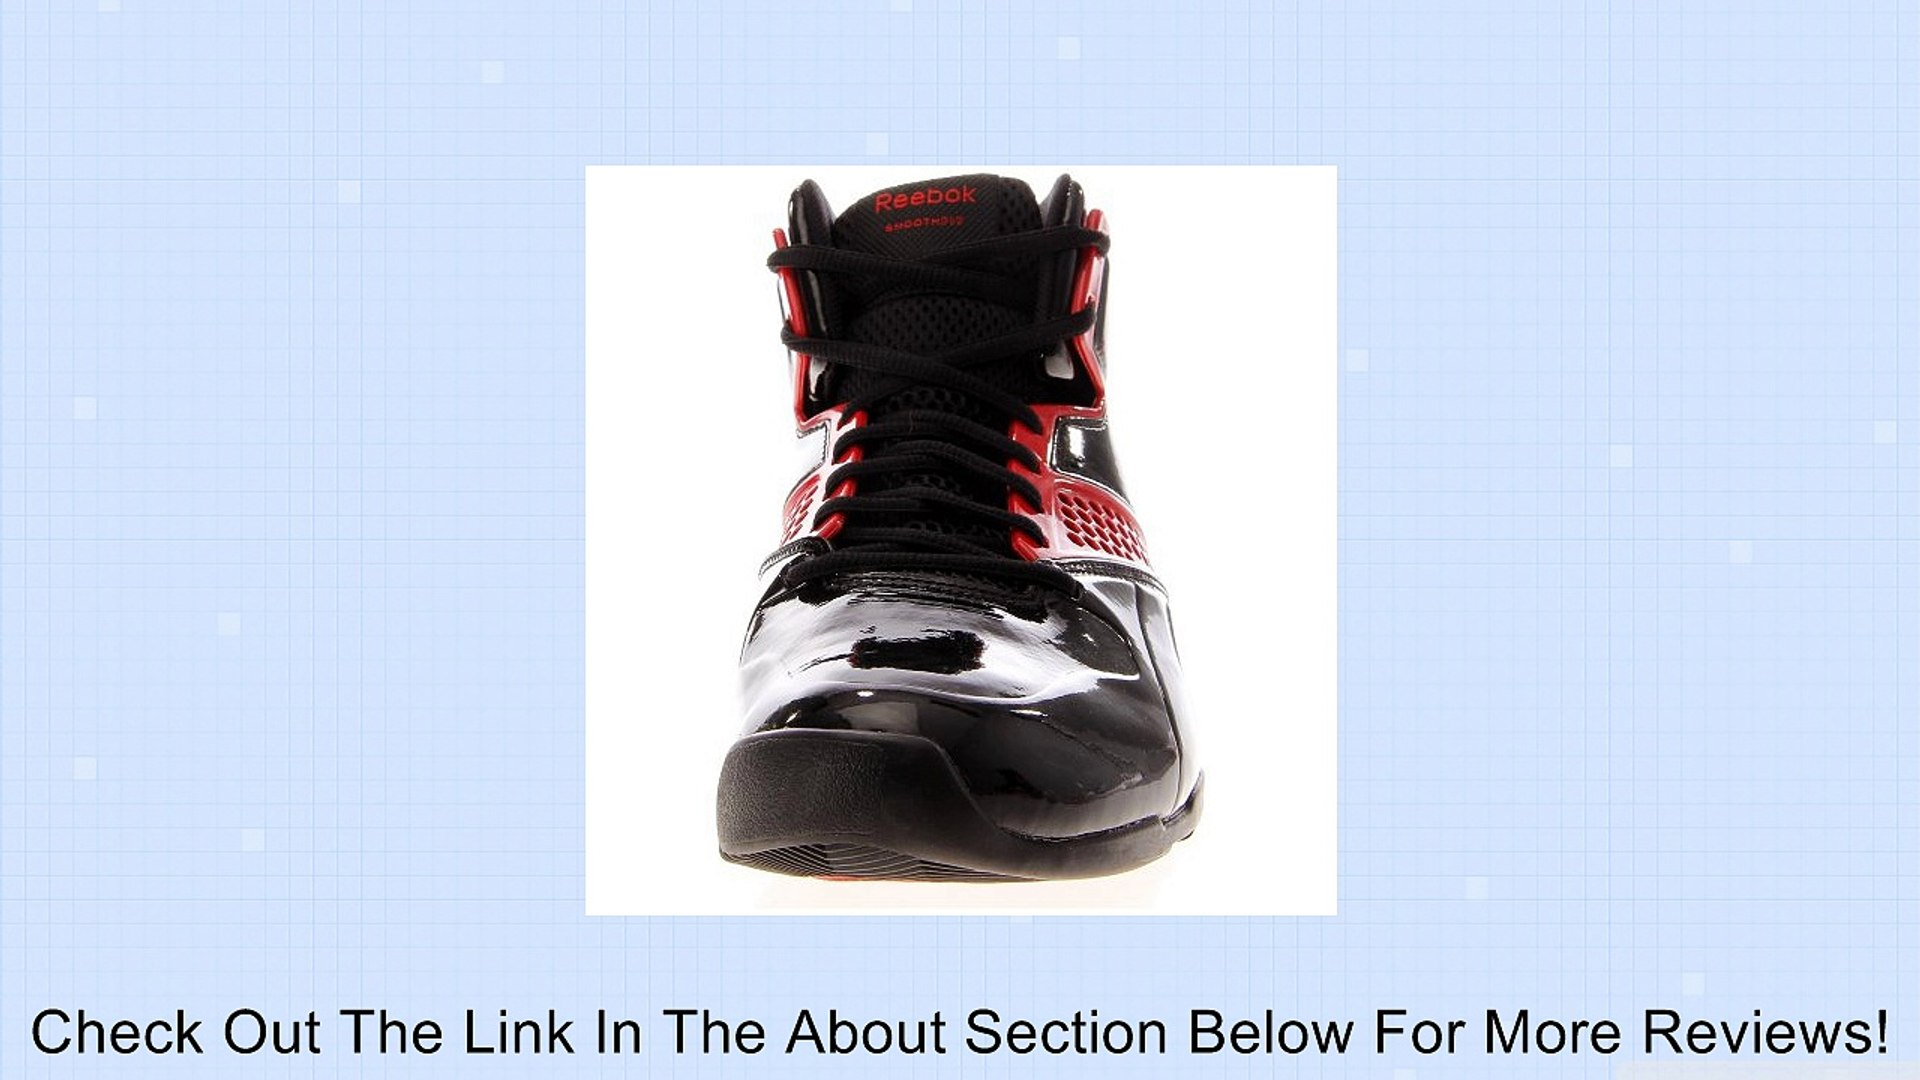 Reebok Still Talking Black/Red Basketball Shoes men's 7.5 Review